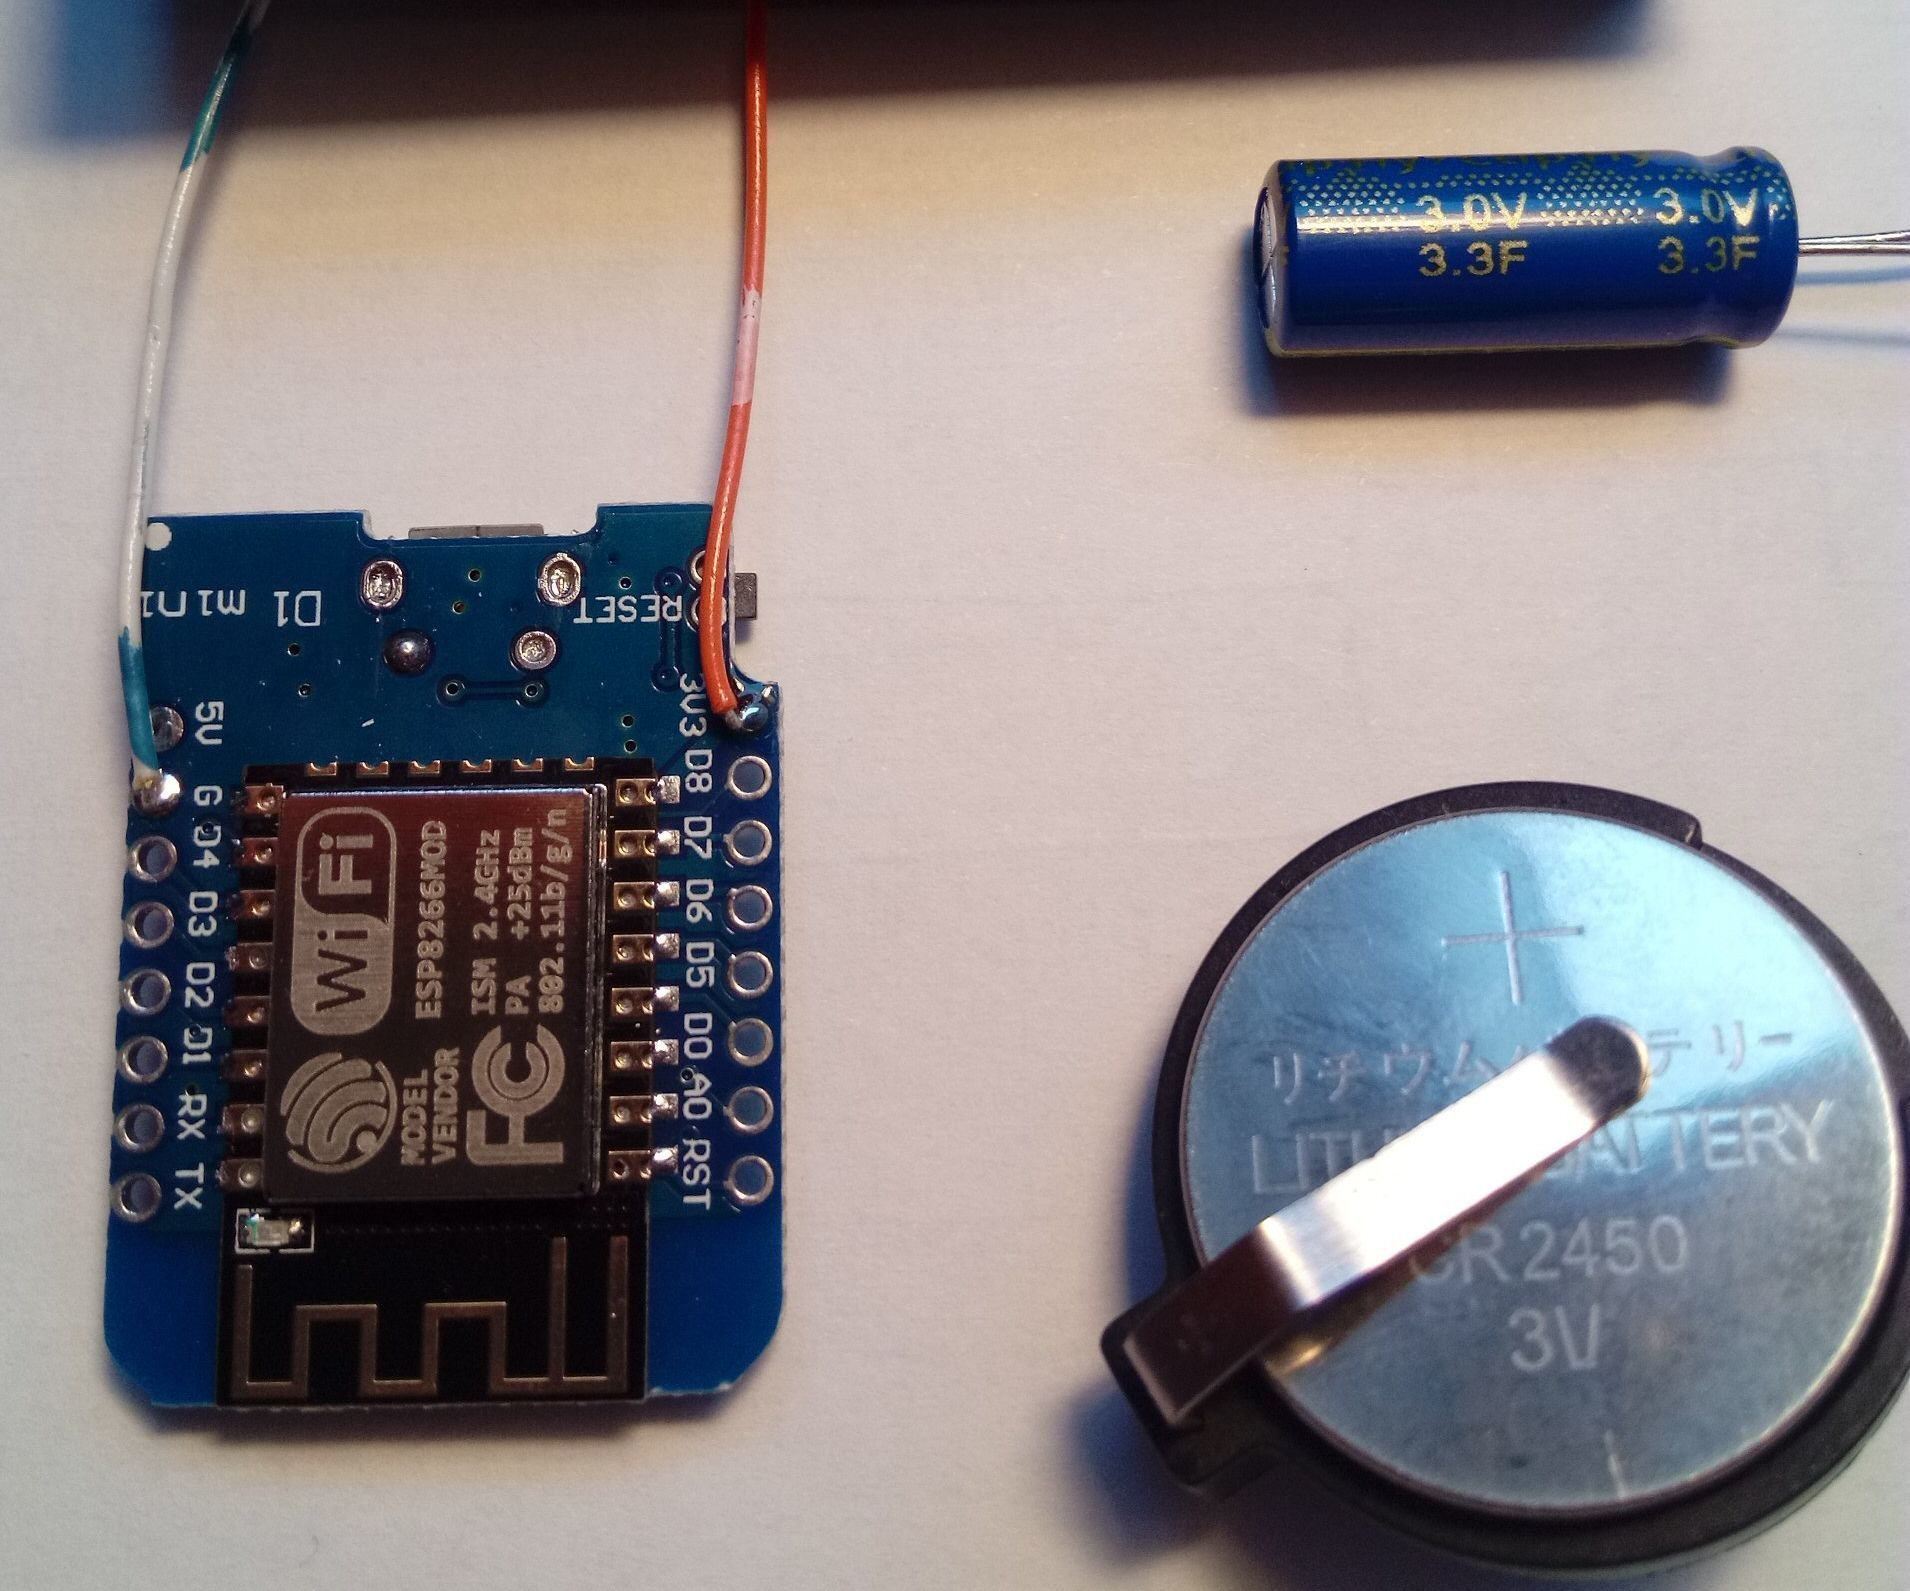 Remote Control Esp8266 With Coin Cell And Tech Controlled Toy Car Circuit Transceiver Module